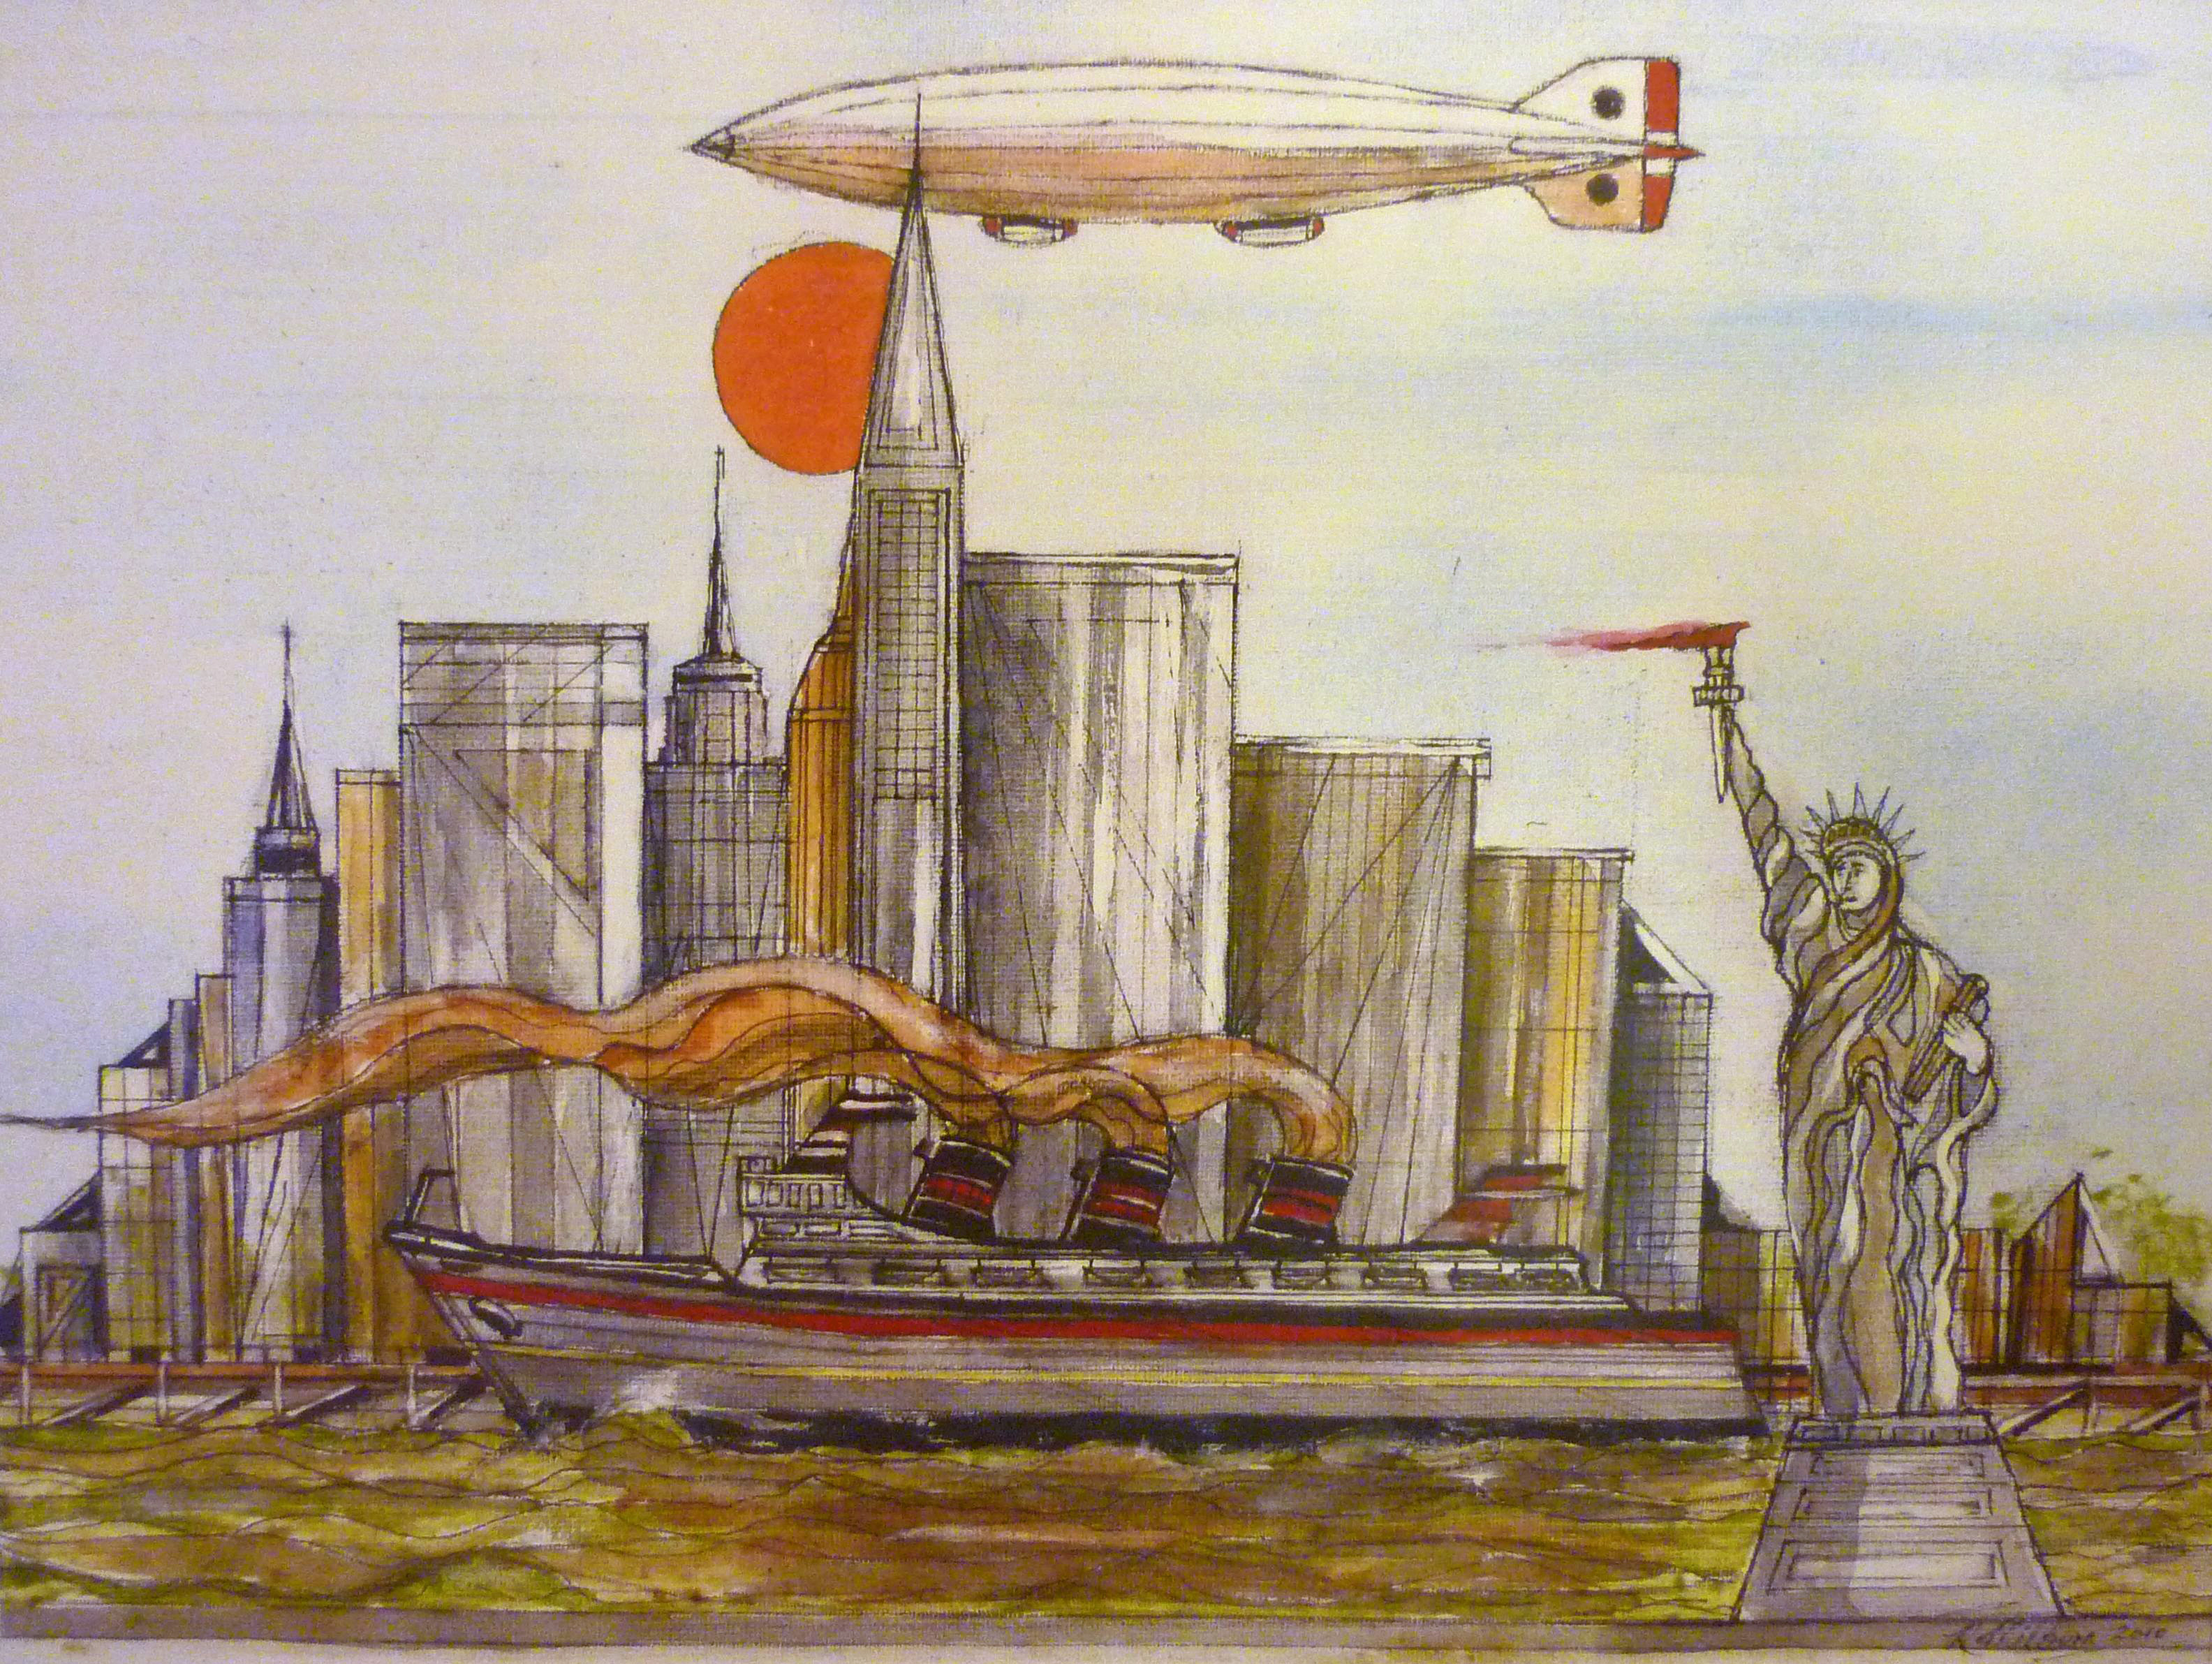 New York, Airship, Statue of Liberty, Steam Ship. Watercolour.2009